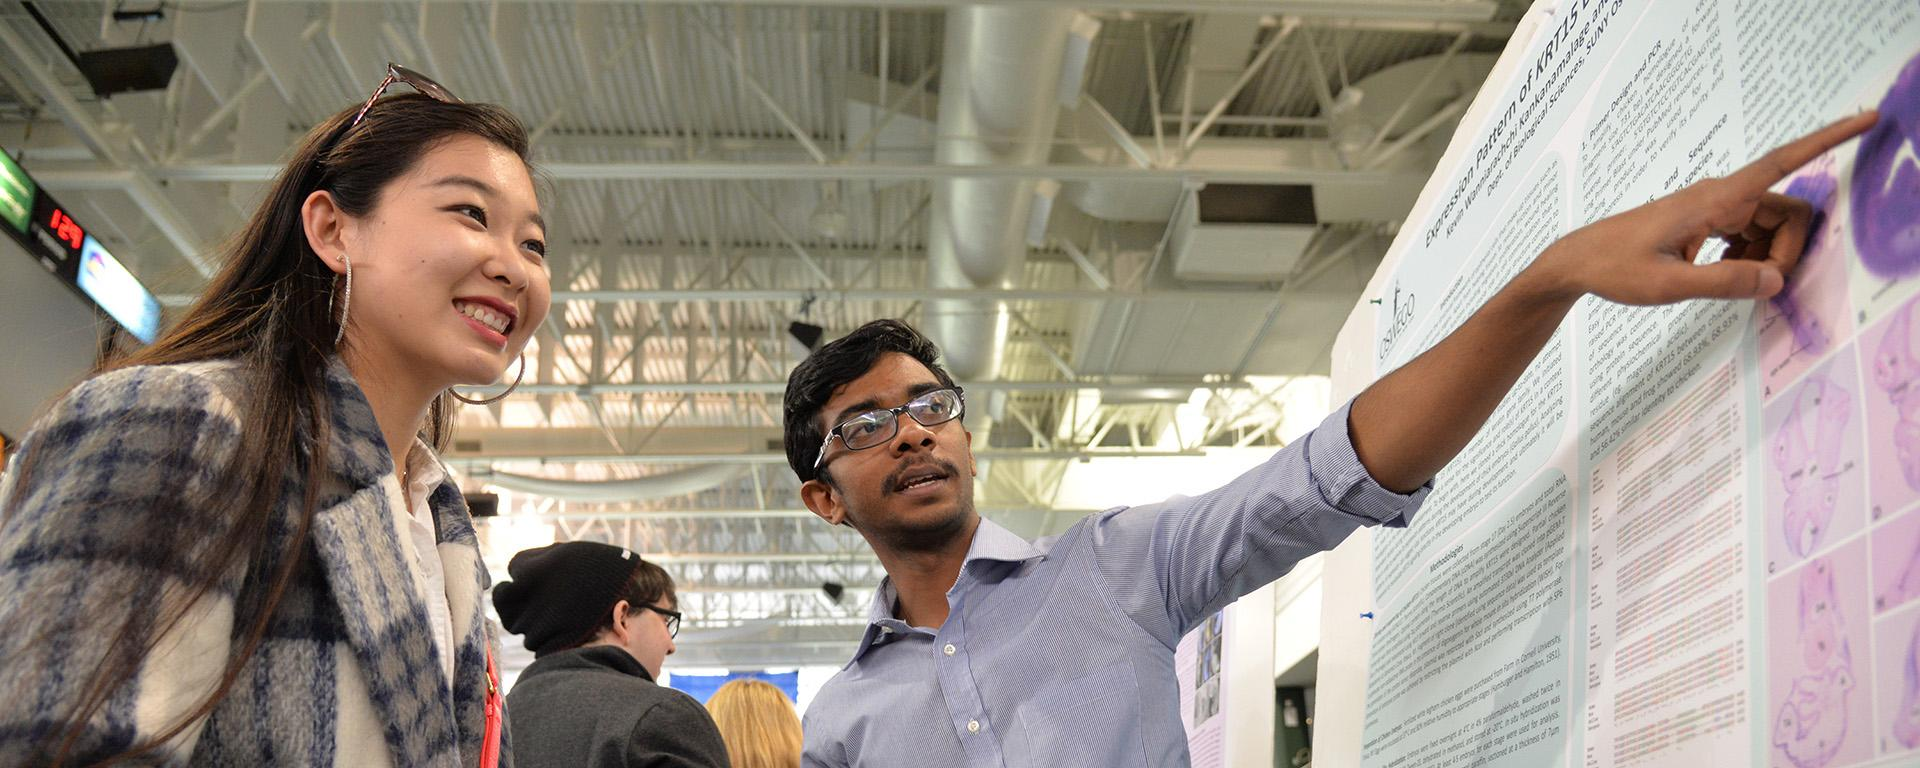 Poster presenter explains his research to student at Quest poster presentation